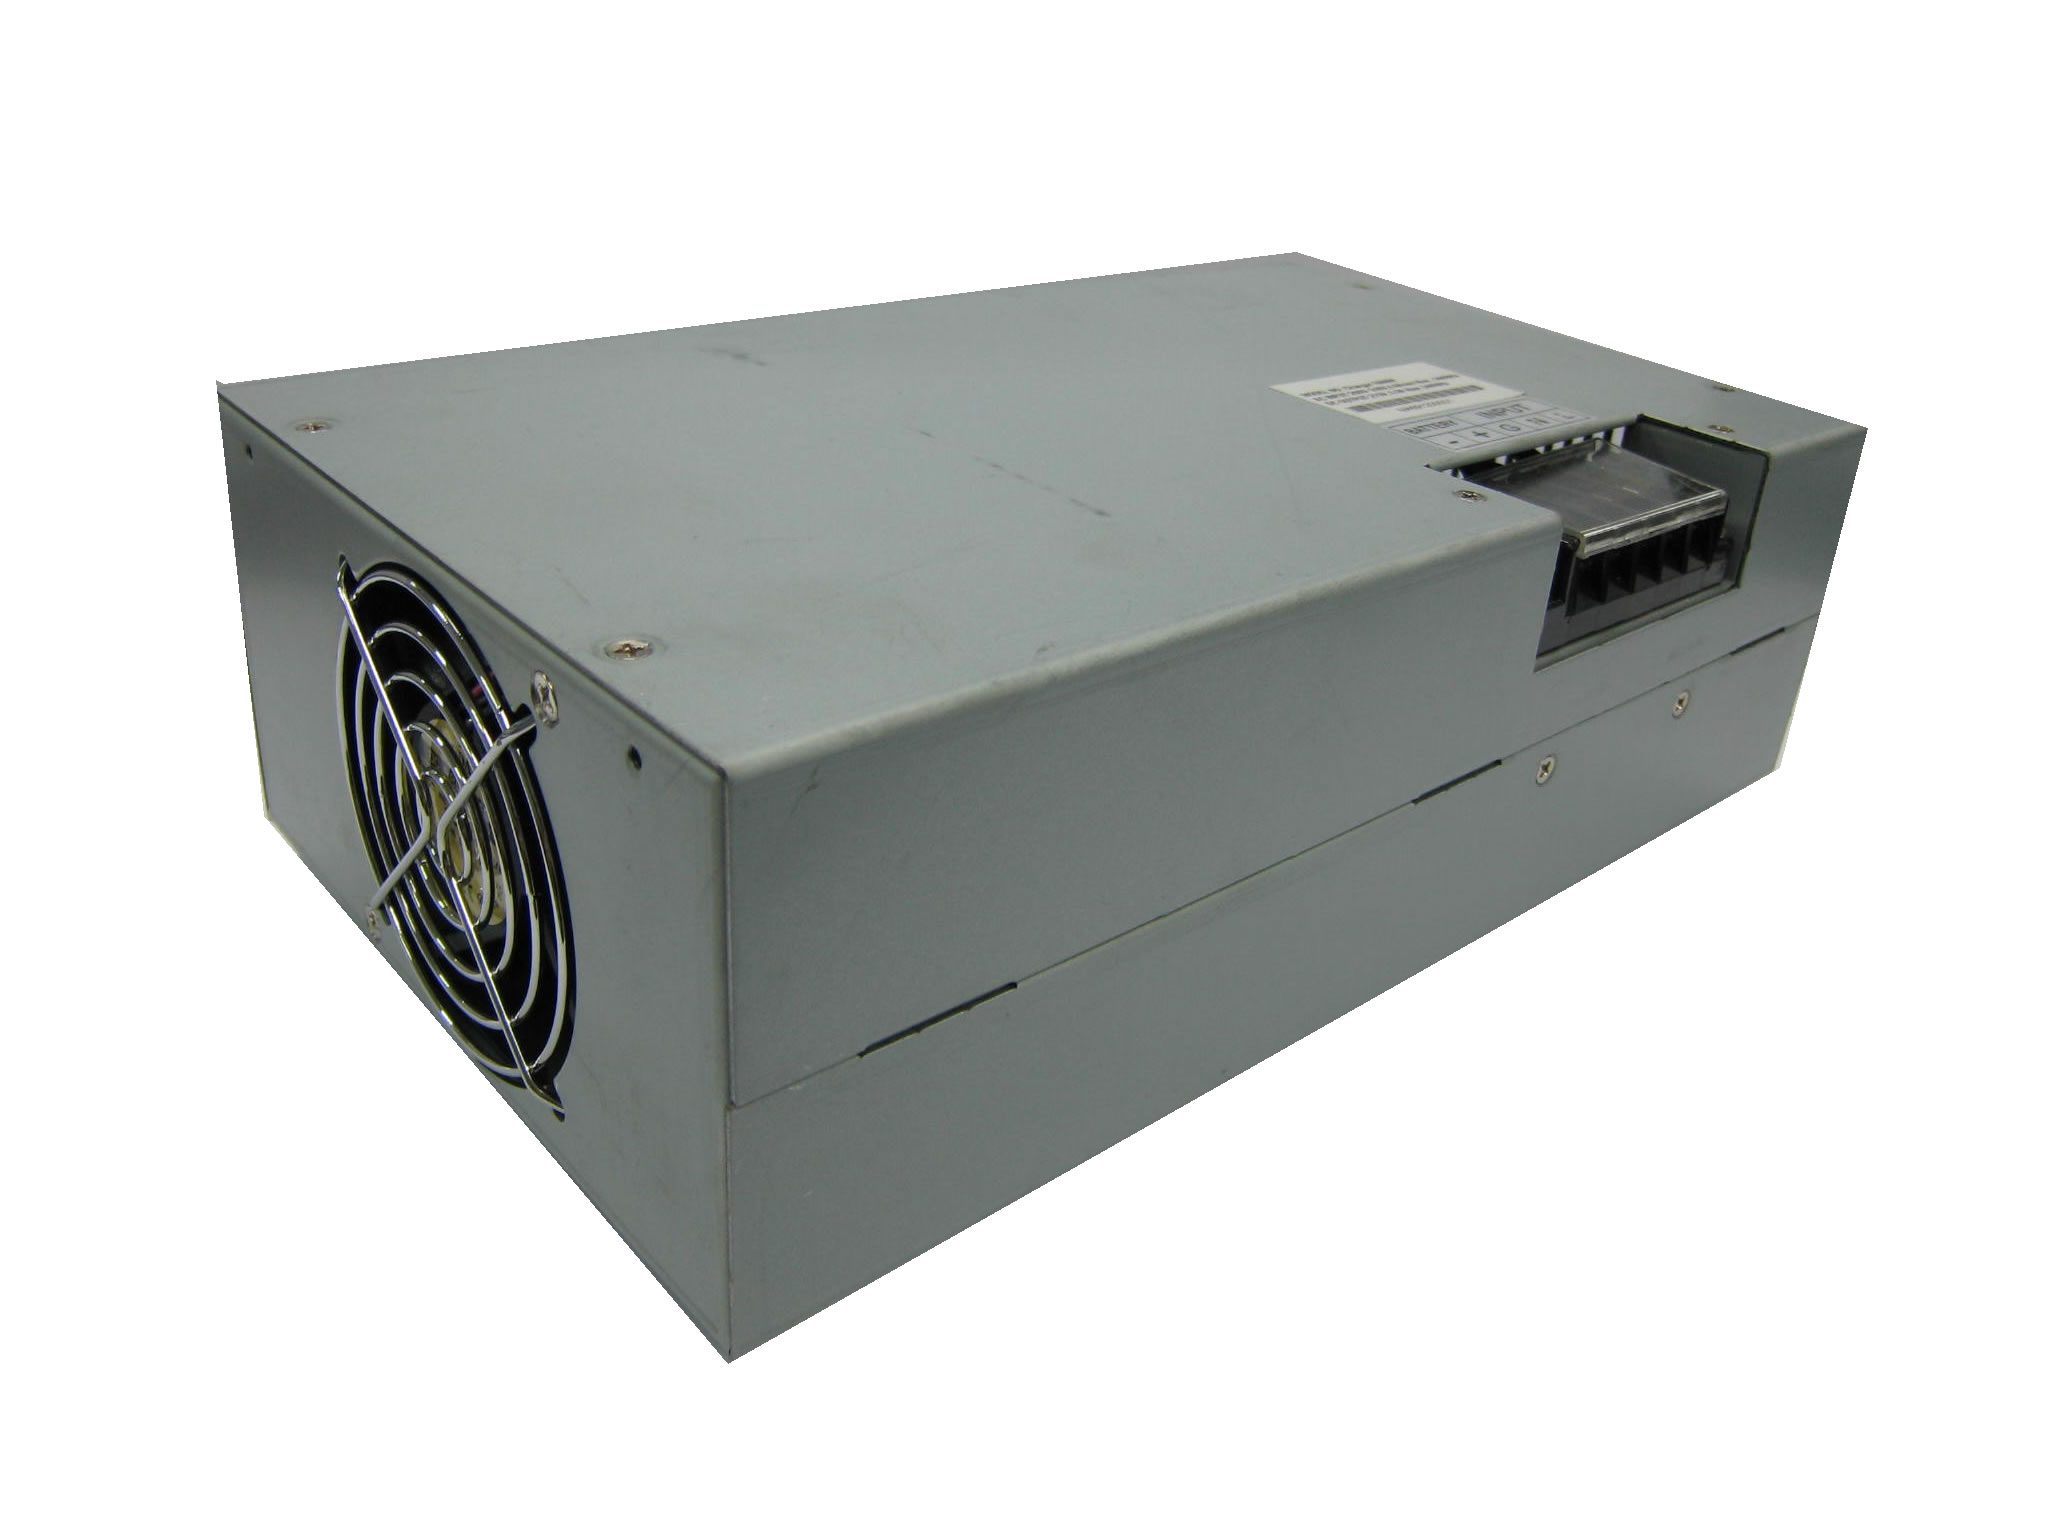 UPS MONOFASE ON LINE DOPPIA CONVERSIONE 6kVA – 10kVA serie NS LCD pf1 - EXTERNAL BATTERY CHARGER